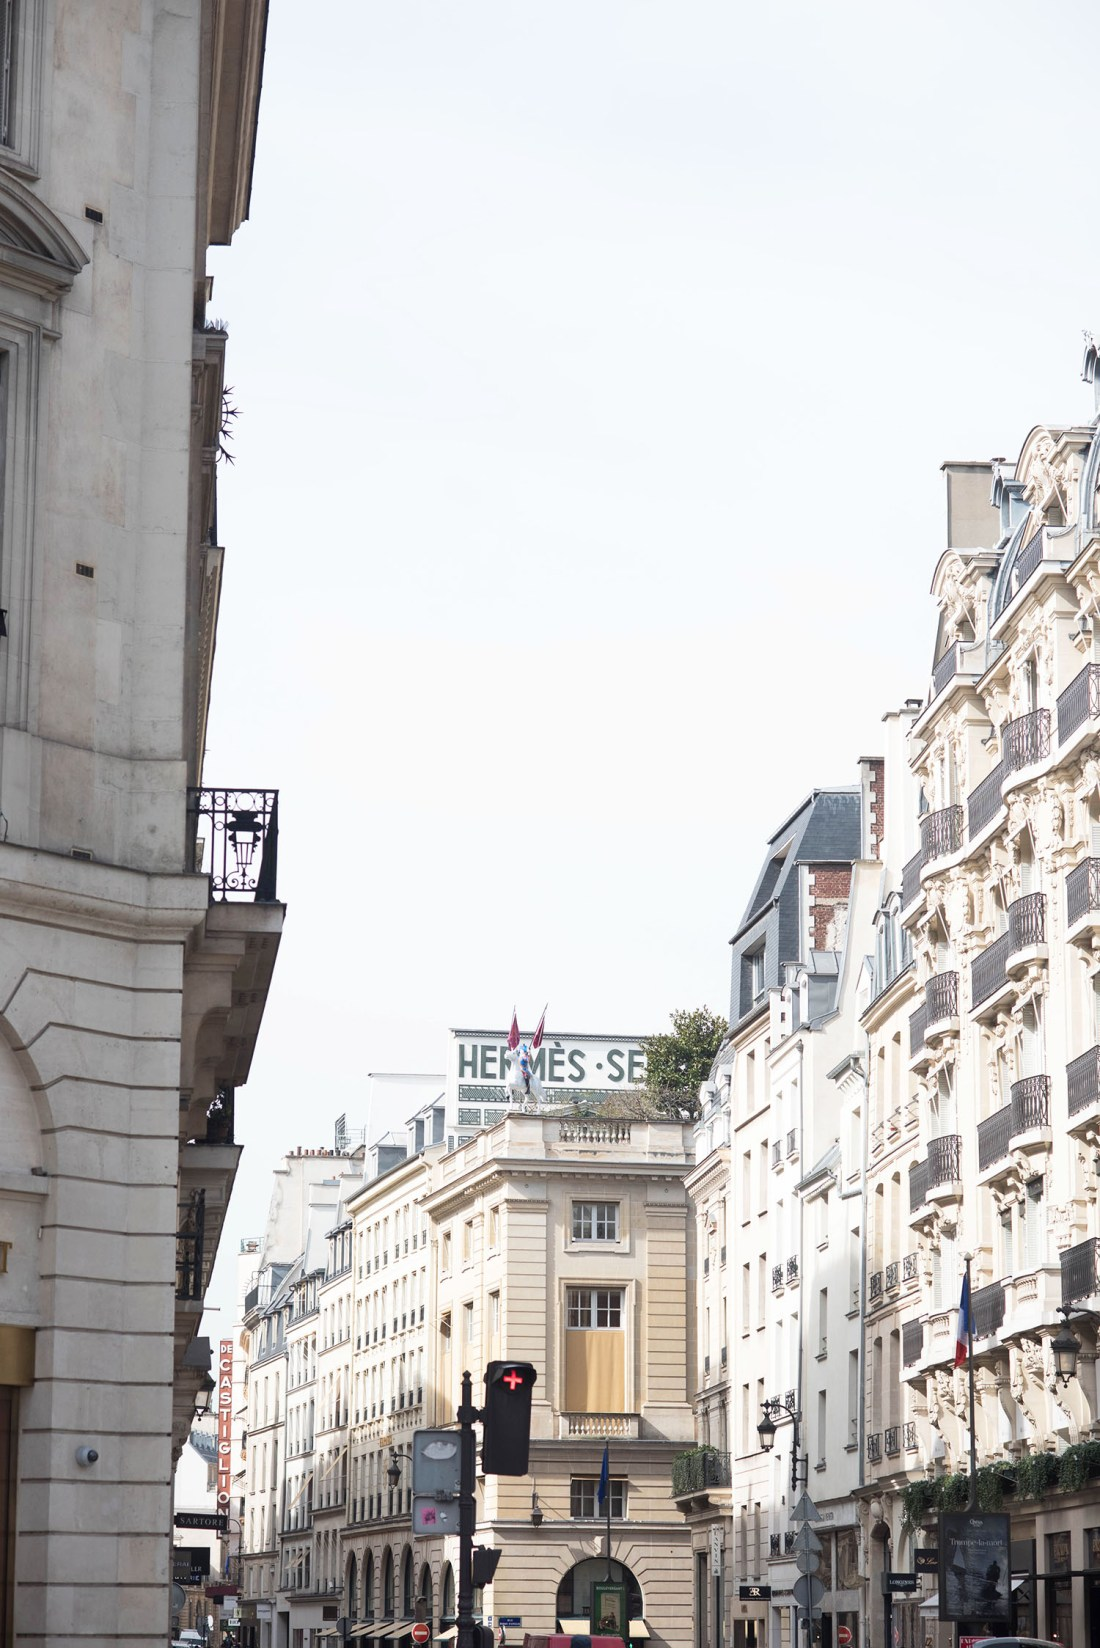 The Hermes store on rue Sainte-Honoree in Paris, as captured by top Canadian travel blogger Cee Fardoe Coco & Vera